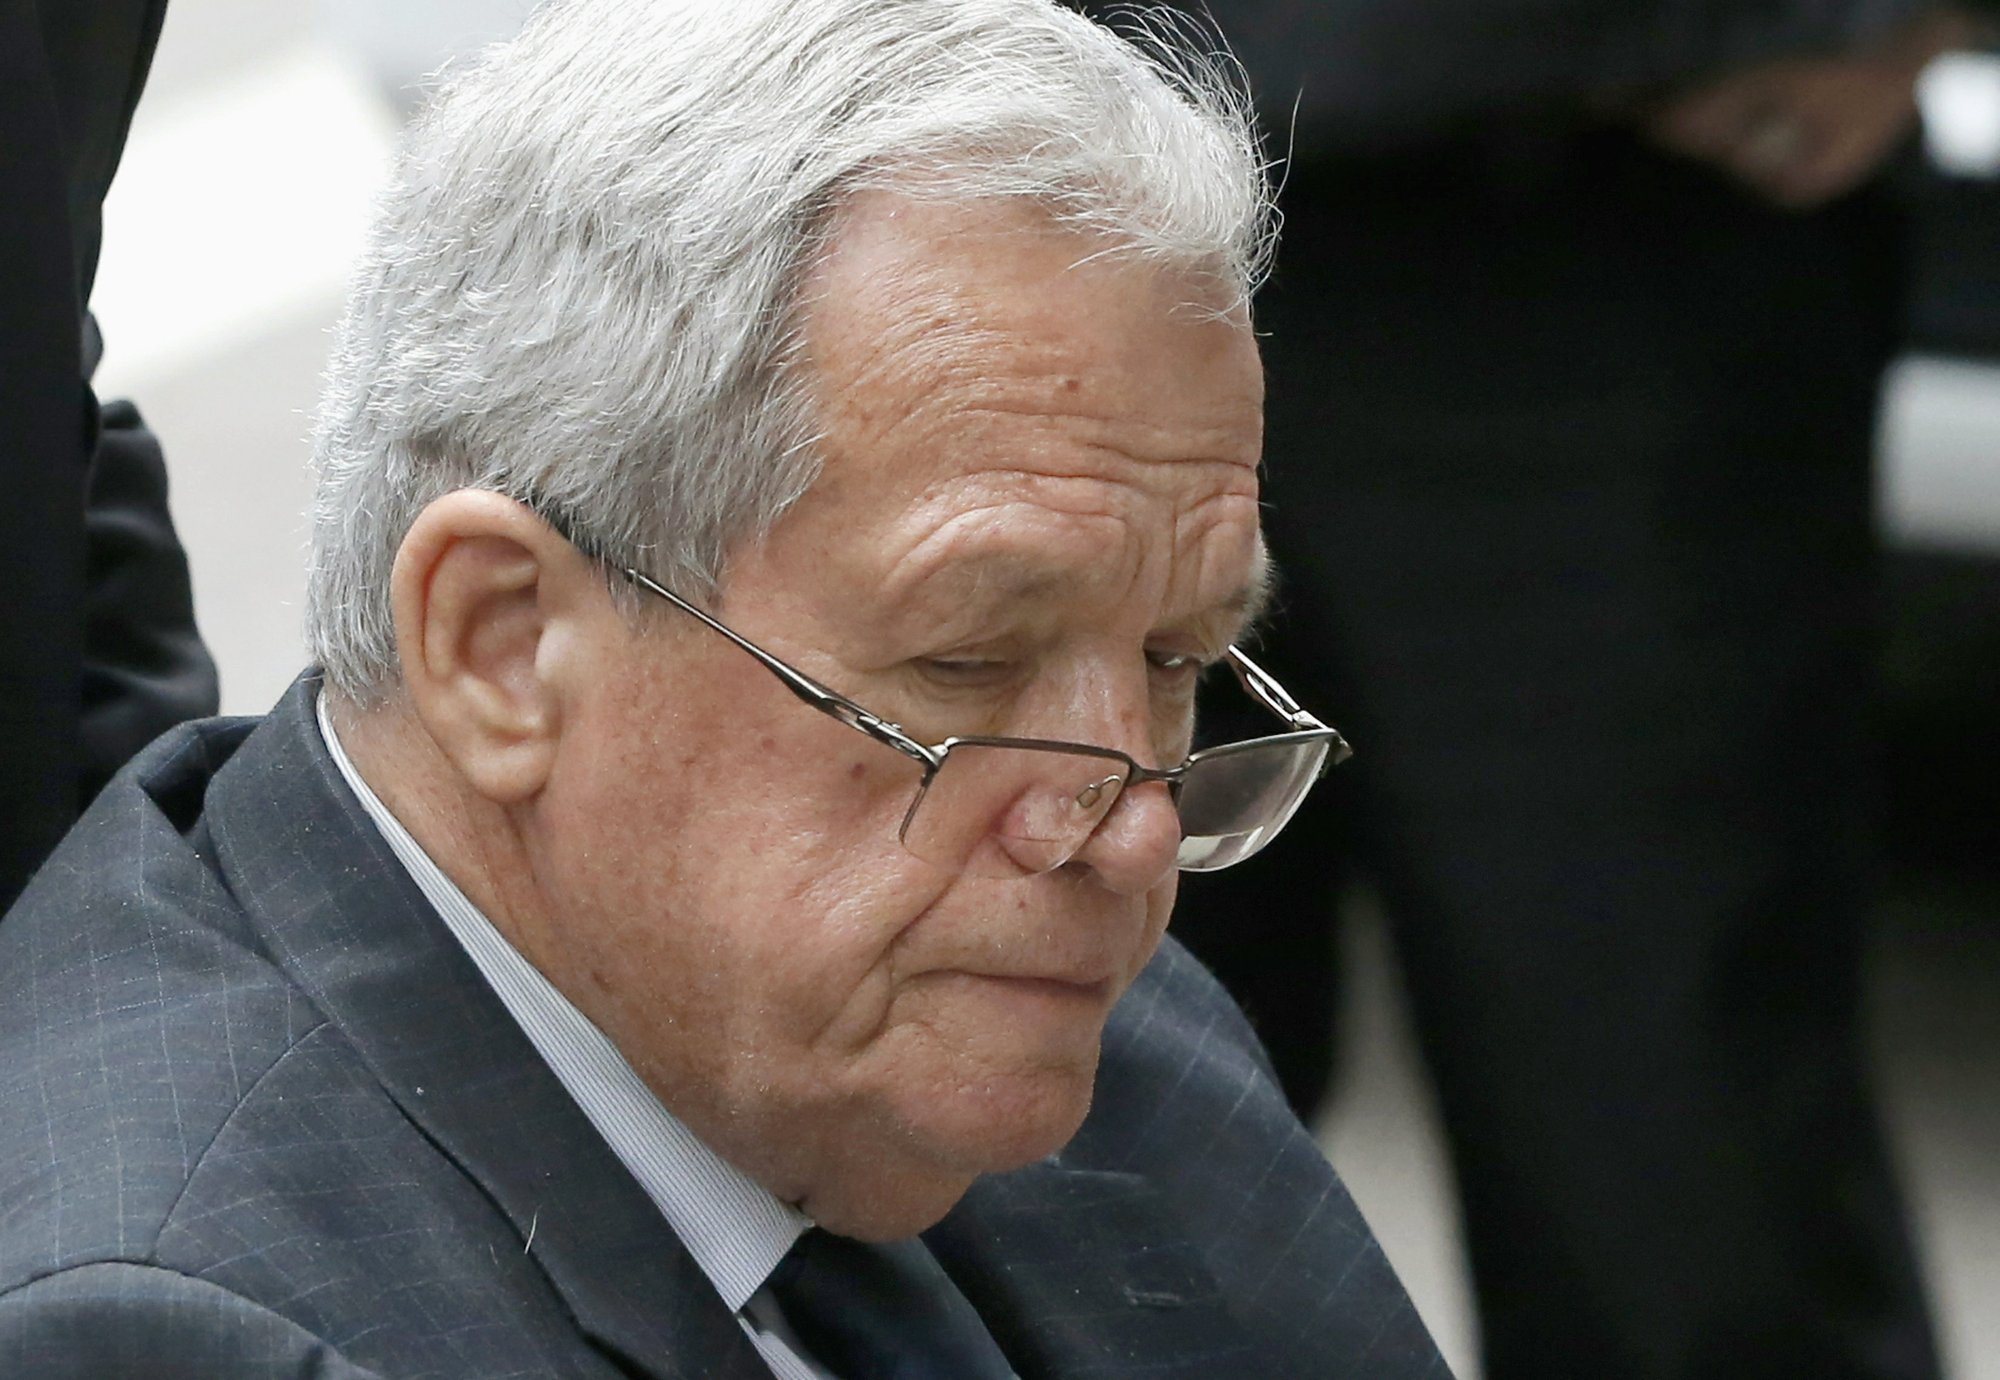 Lawyers: Hastert trying to take back sexual-abuse admissions